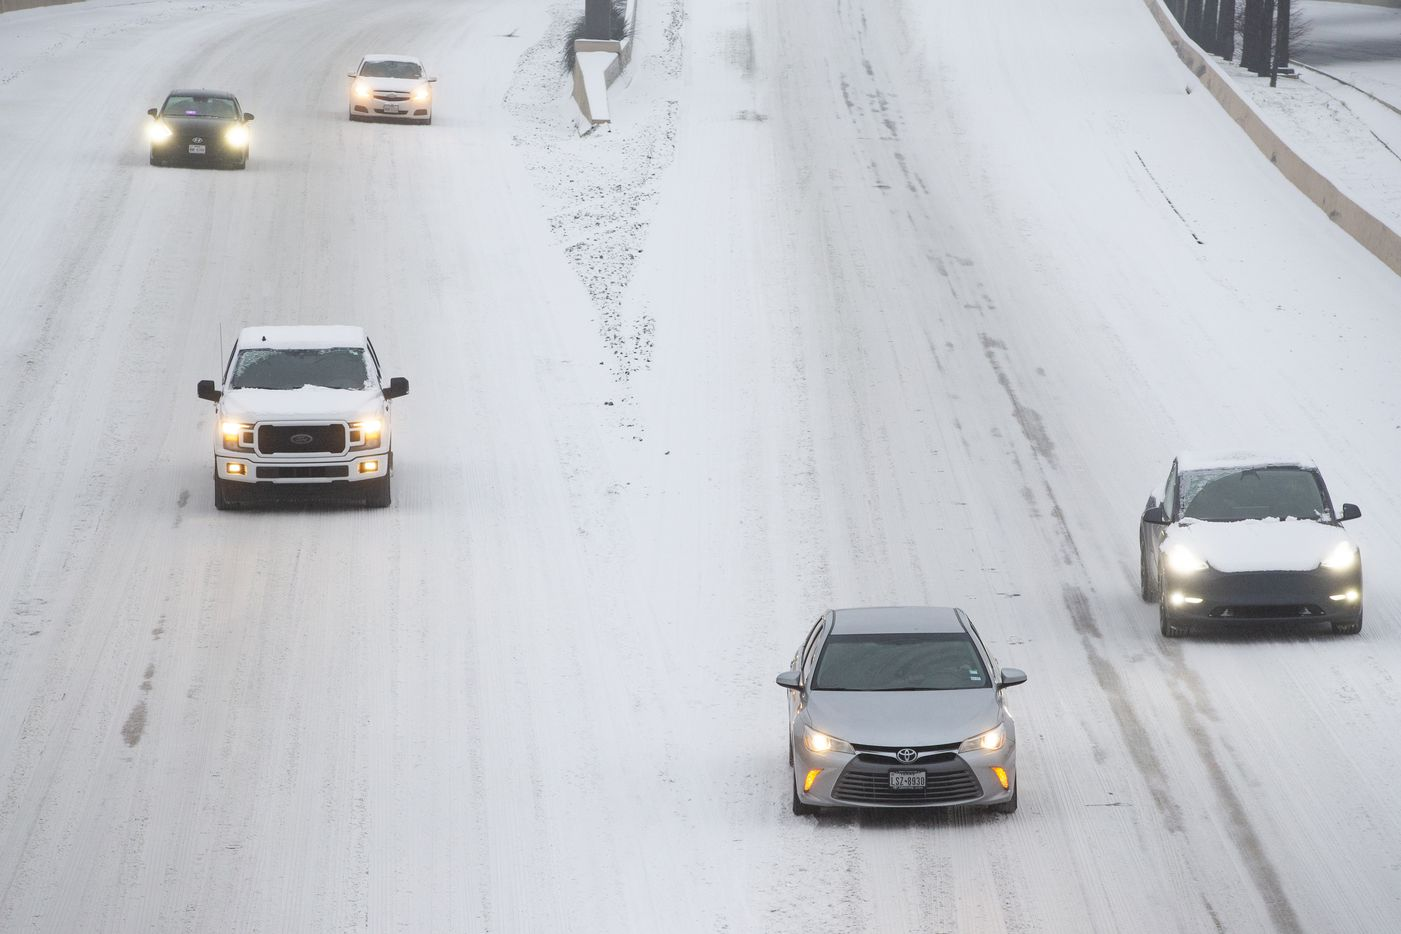 Traffic seen on a snowy and icy North Central Expressway in Dallas on Wednesday, Feb. 17, 2021. Millions of Texans have lost power amid this record-breaking winter storm.